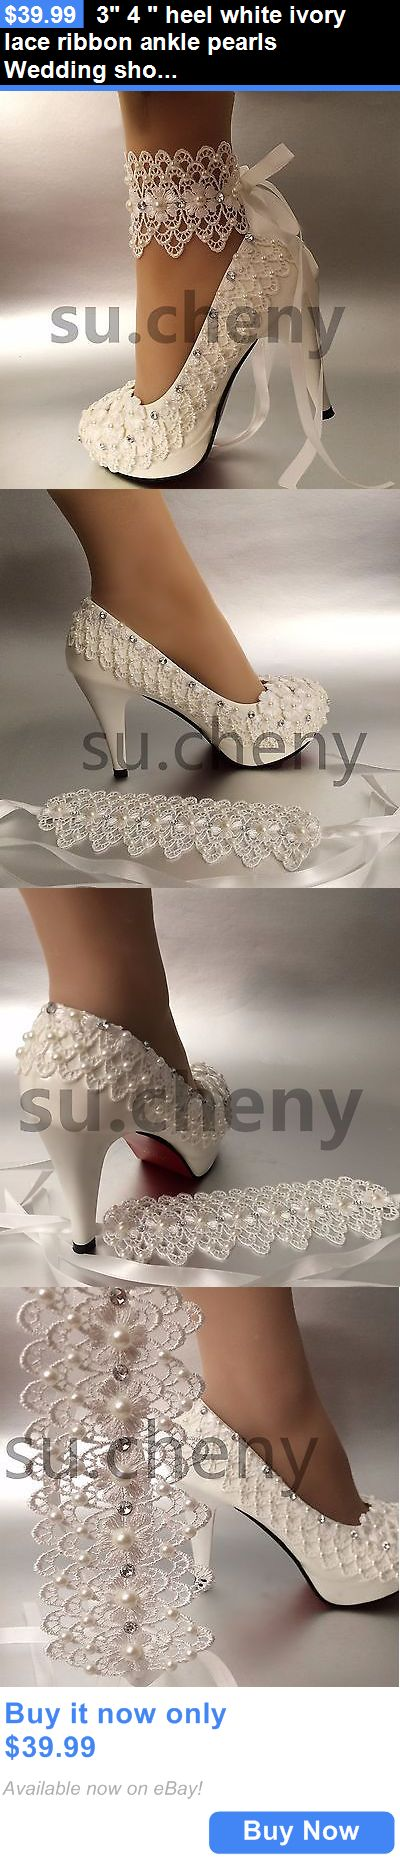 Wedding Shoes And Bridal Shoes: 3 4 Heel White Ivory Lace Ribbon Ankle Pearls Wedding Shoes Bride Size 5-11 BUY IT NOW ONLY: $39.99